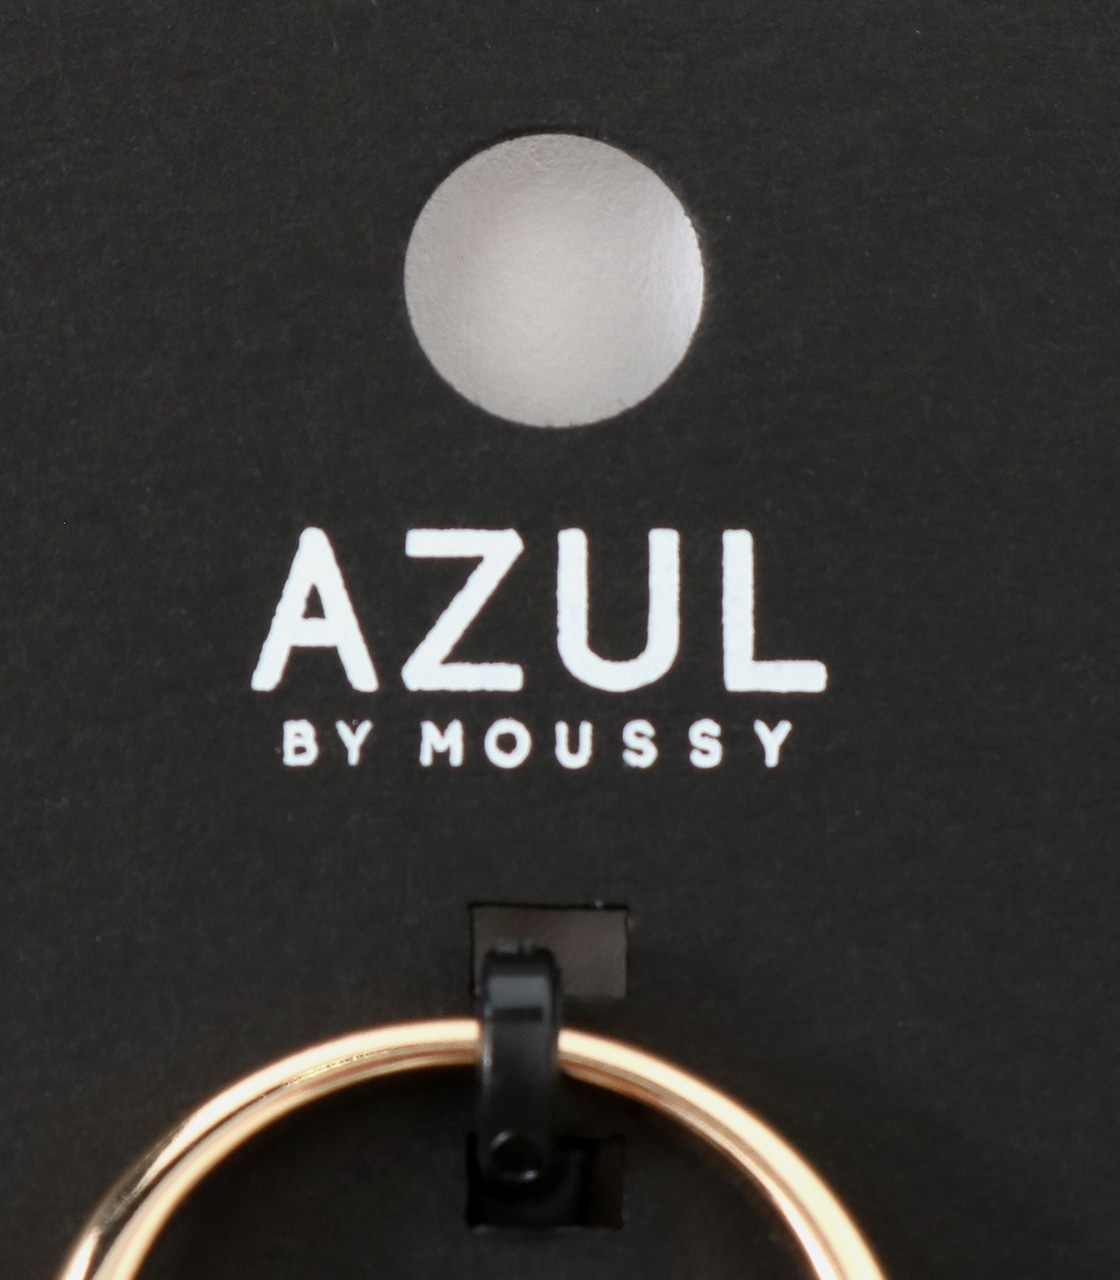 【AZUL BY MOUSSY】V字メタル5本SETリング 詳細画像 L/GLD 9